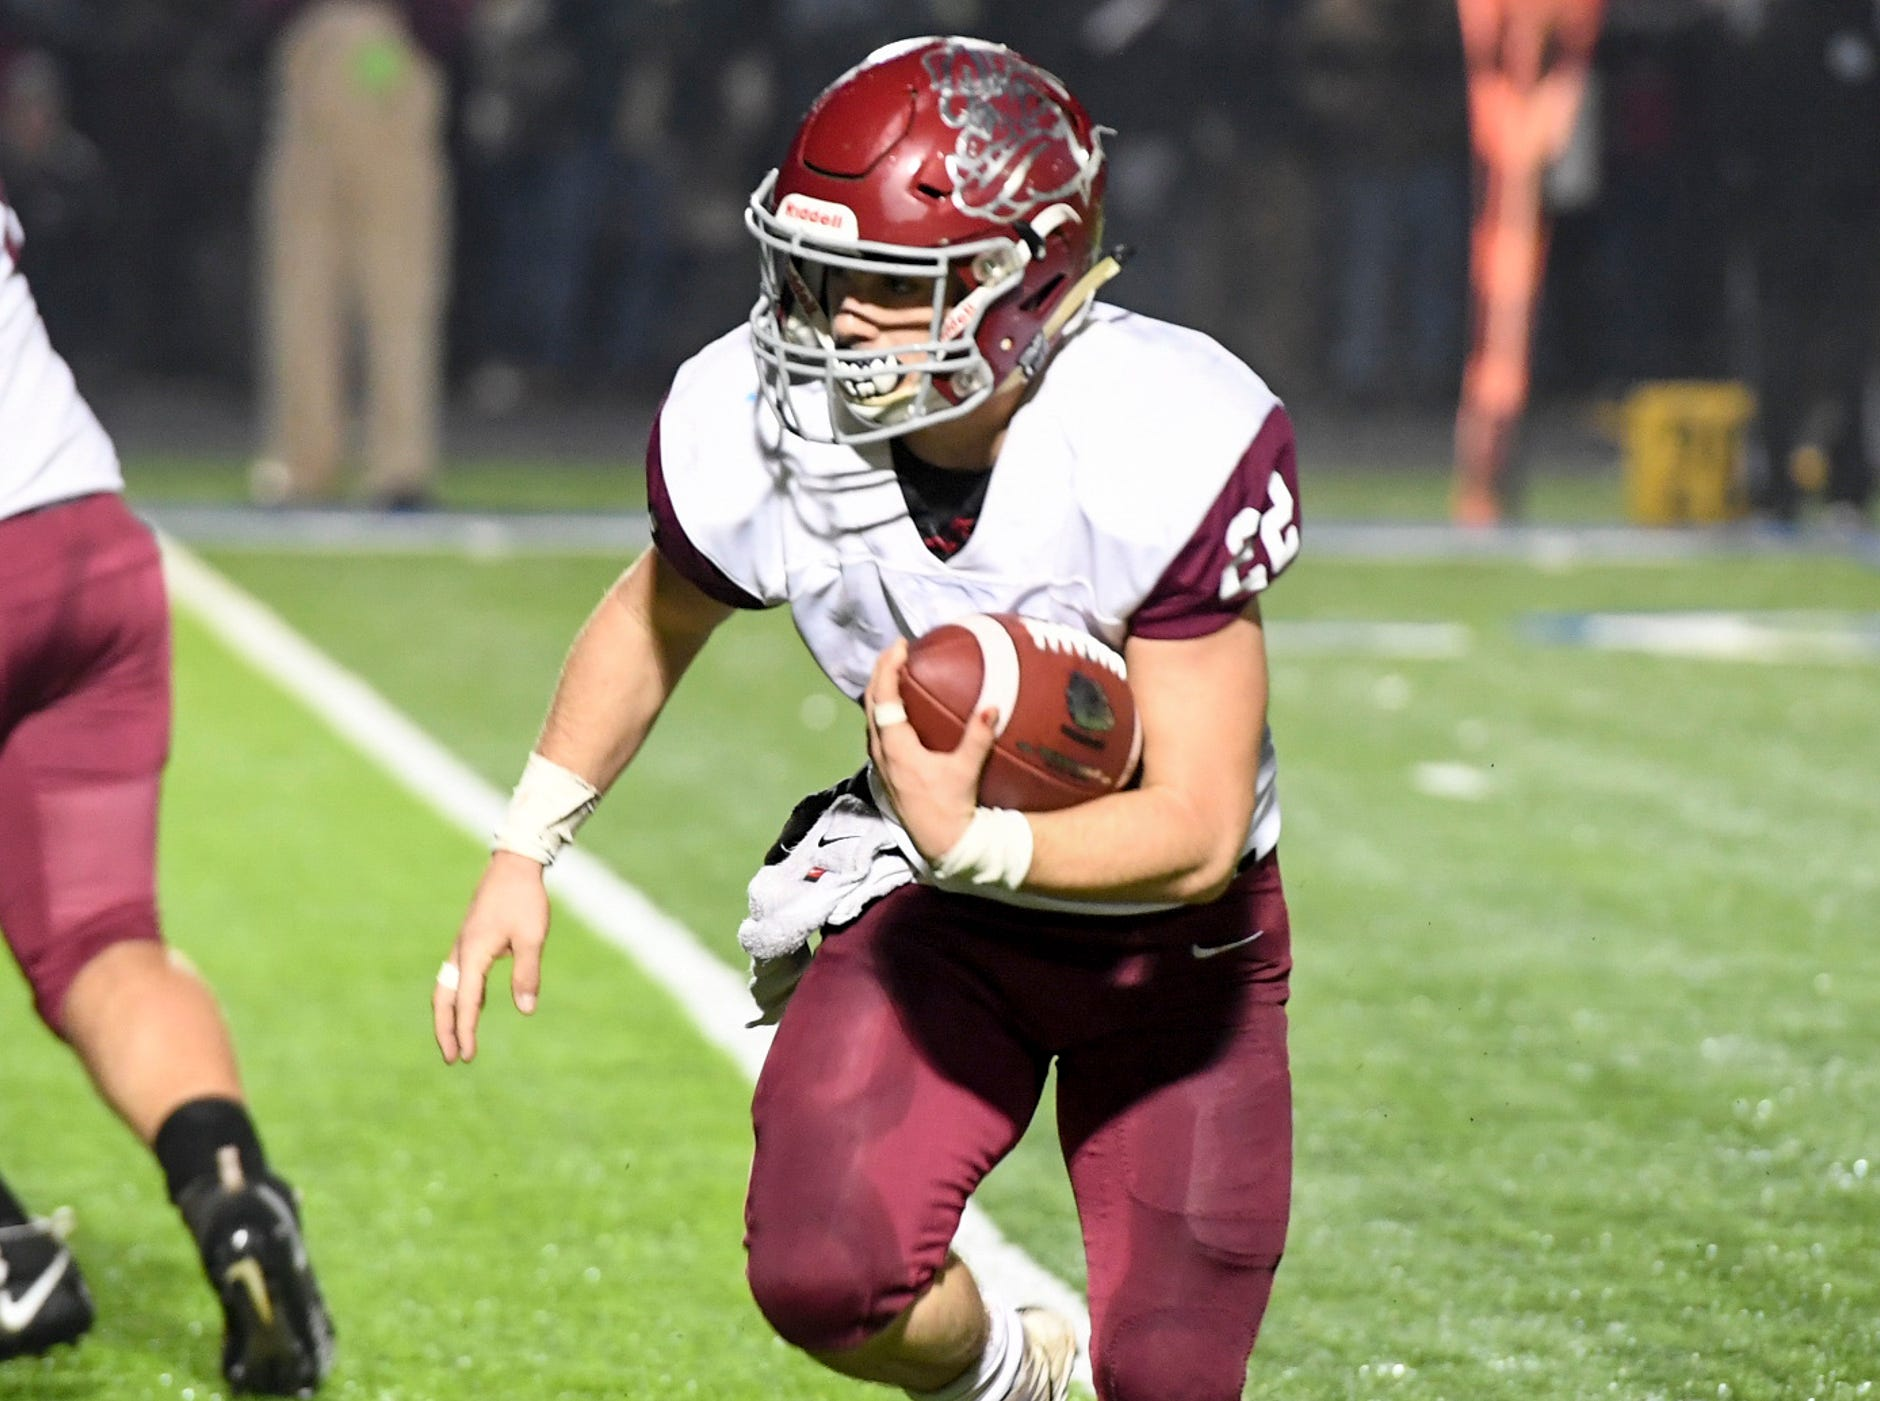 Cornersville's Eli Woodard looks for opening to run the ball during their TSSAA Class A quarter final game against Huntingdon, Friday, November 16. Huntingdon fell to Cornersville, 13-7.